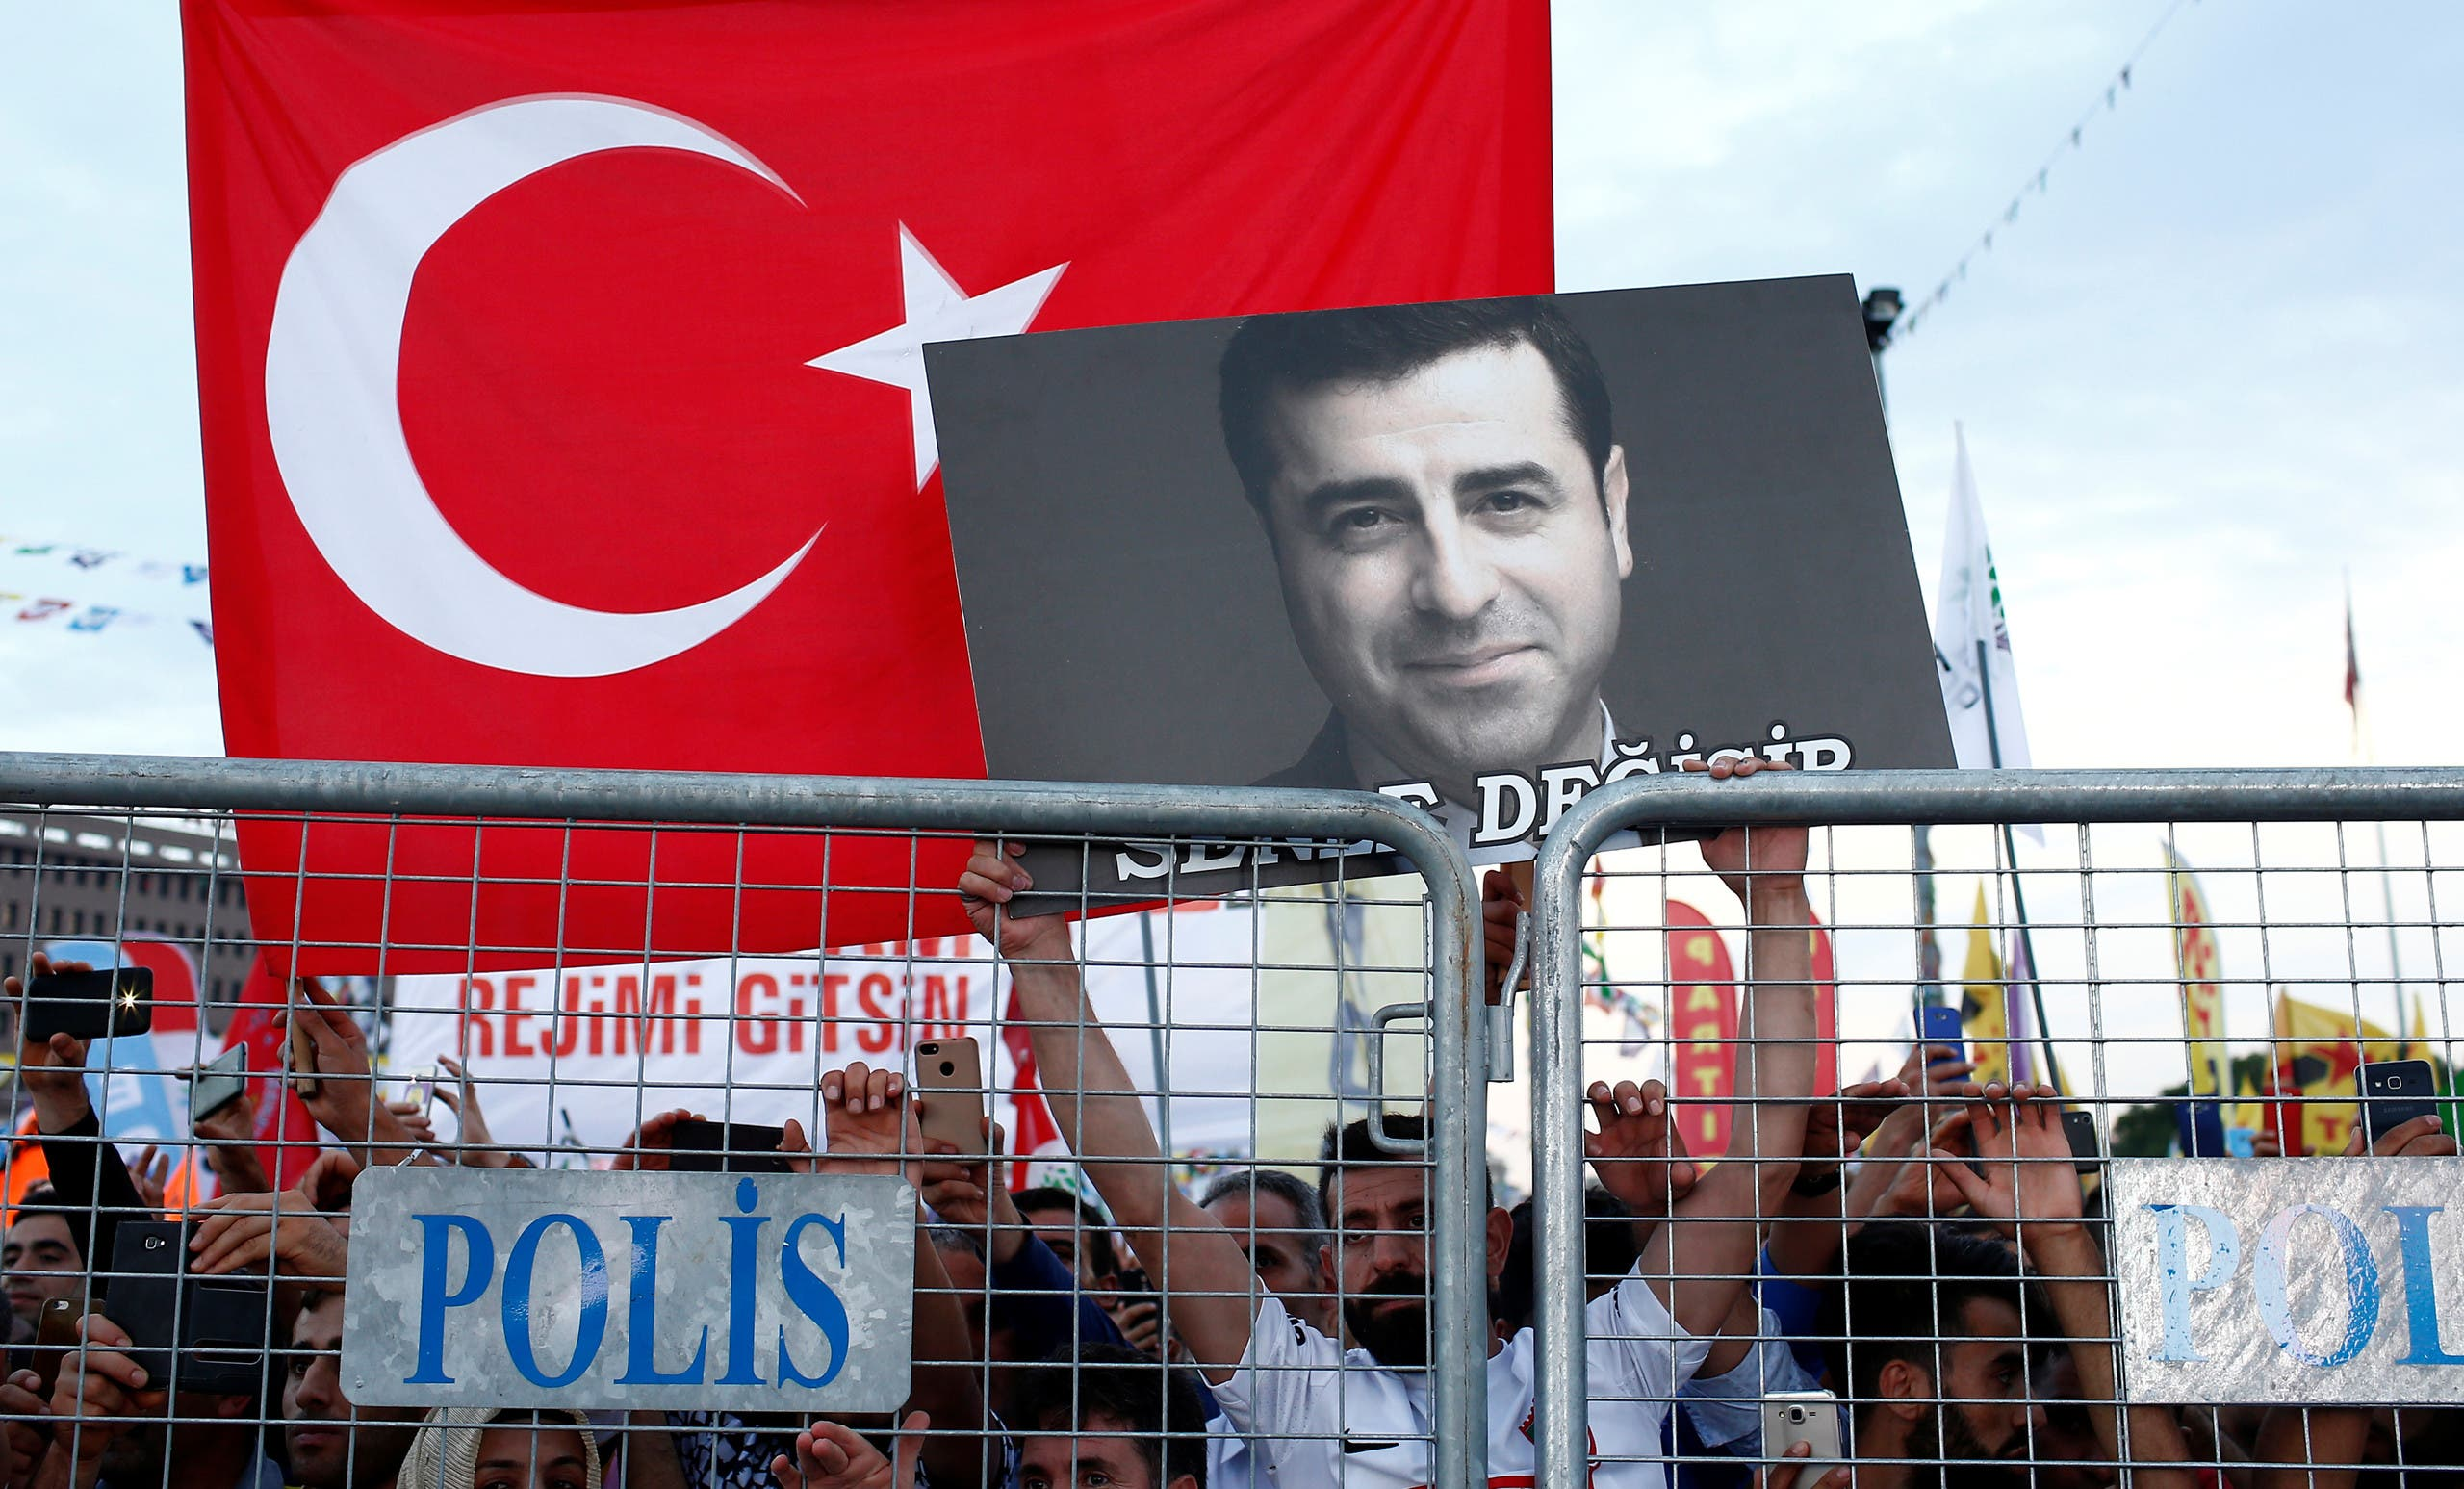 A file photo shows a supporter of Turkey's main pro-Kurdish Peoples' Democratic Party (HDP) holds a portrait of their jailed former leader and presidential candidate Selahattin Demirtas during a campaign event in Istanbul, Turkey, June 17, 2018. (Reuters/Huseyin Aldemir